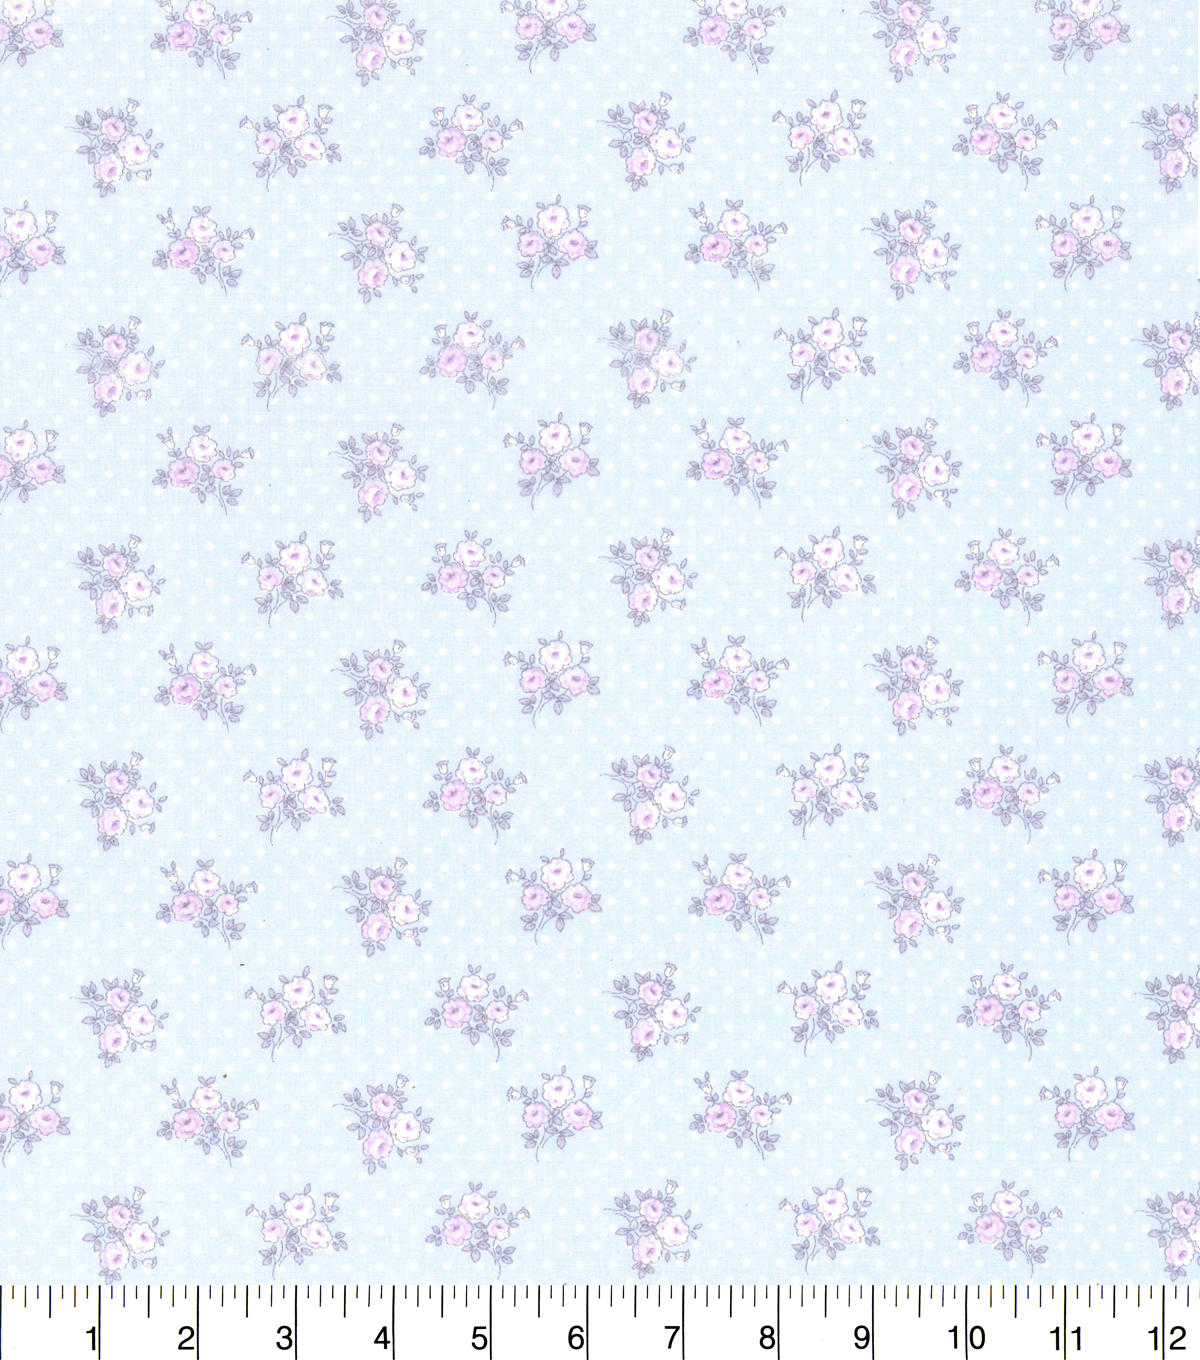 Made in America Cotton Fabric-Shabby Chic Floral Dot